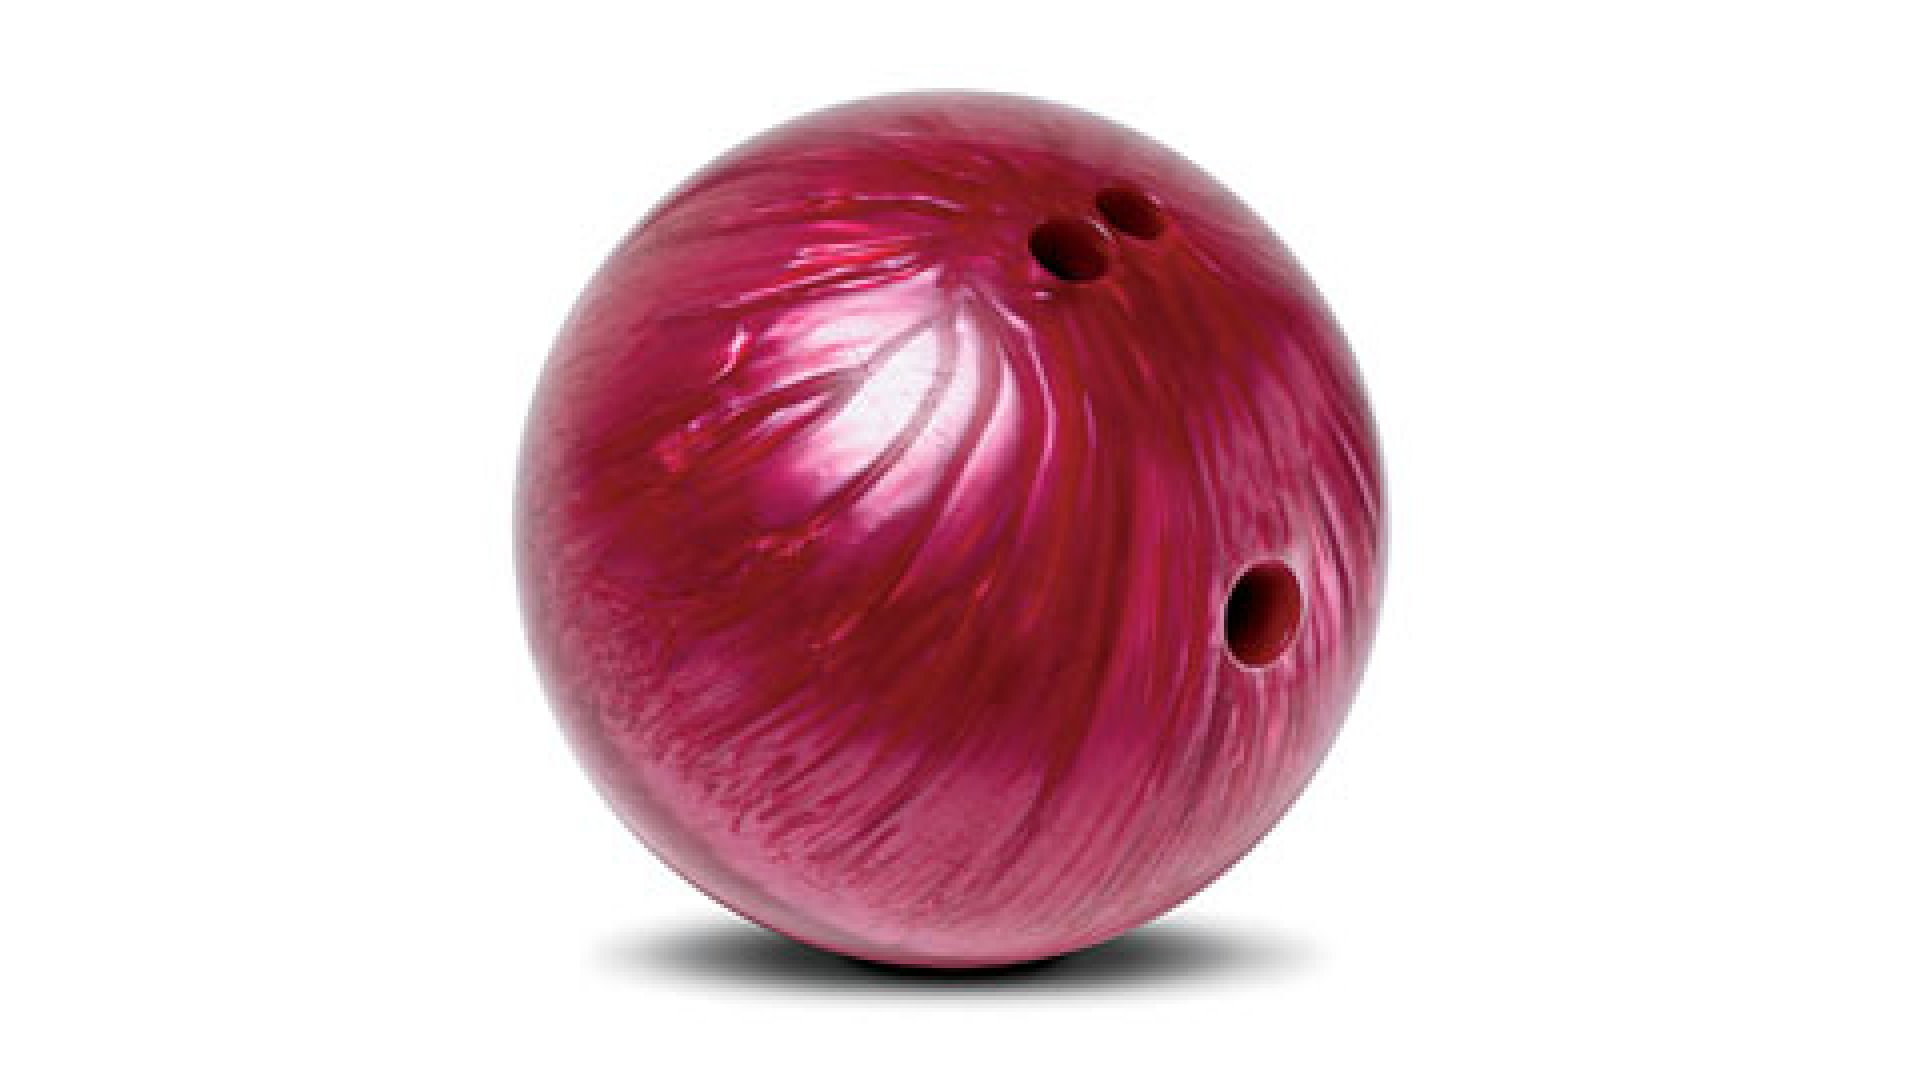 <strong>STRIKE!</strong> Country Lanes North recently signed a deal to host the 2011 United States Bowling Congress's state championships.